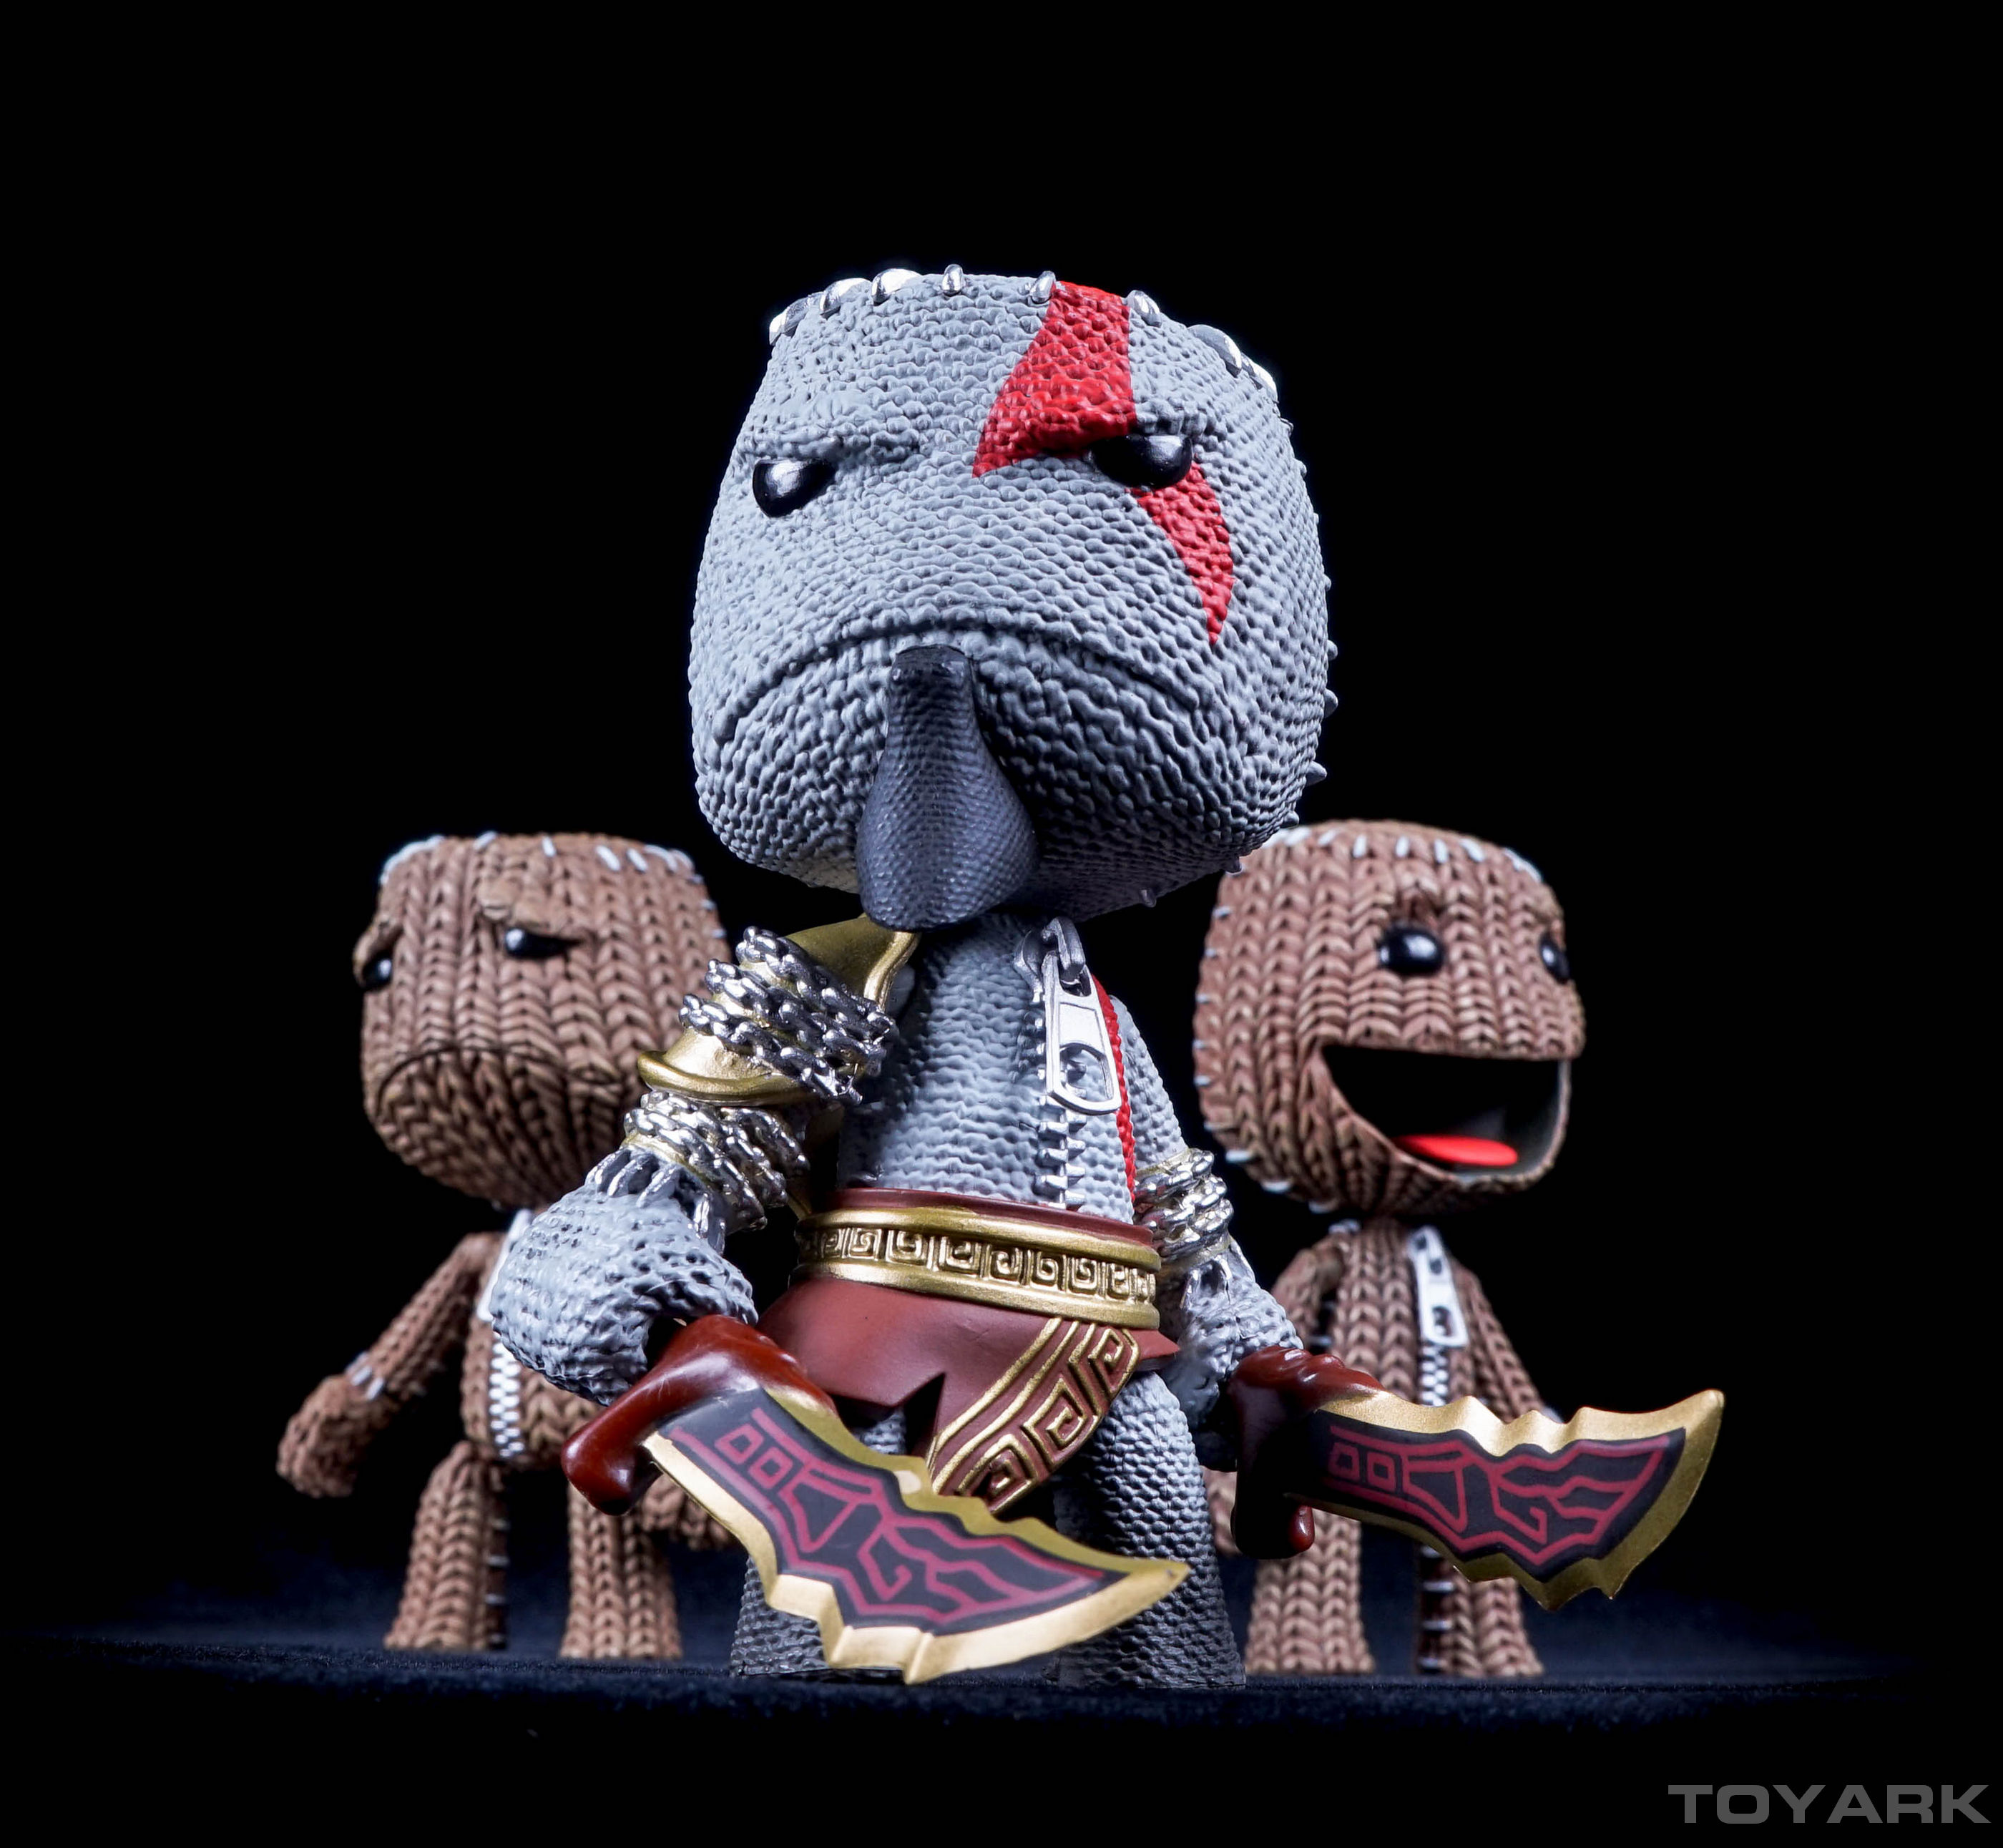 http://news.toyark.com/wp-content/uploads/sites/4/2015/11/LittleBigPlanet-Series-1-NECA-049.jpg